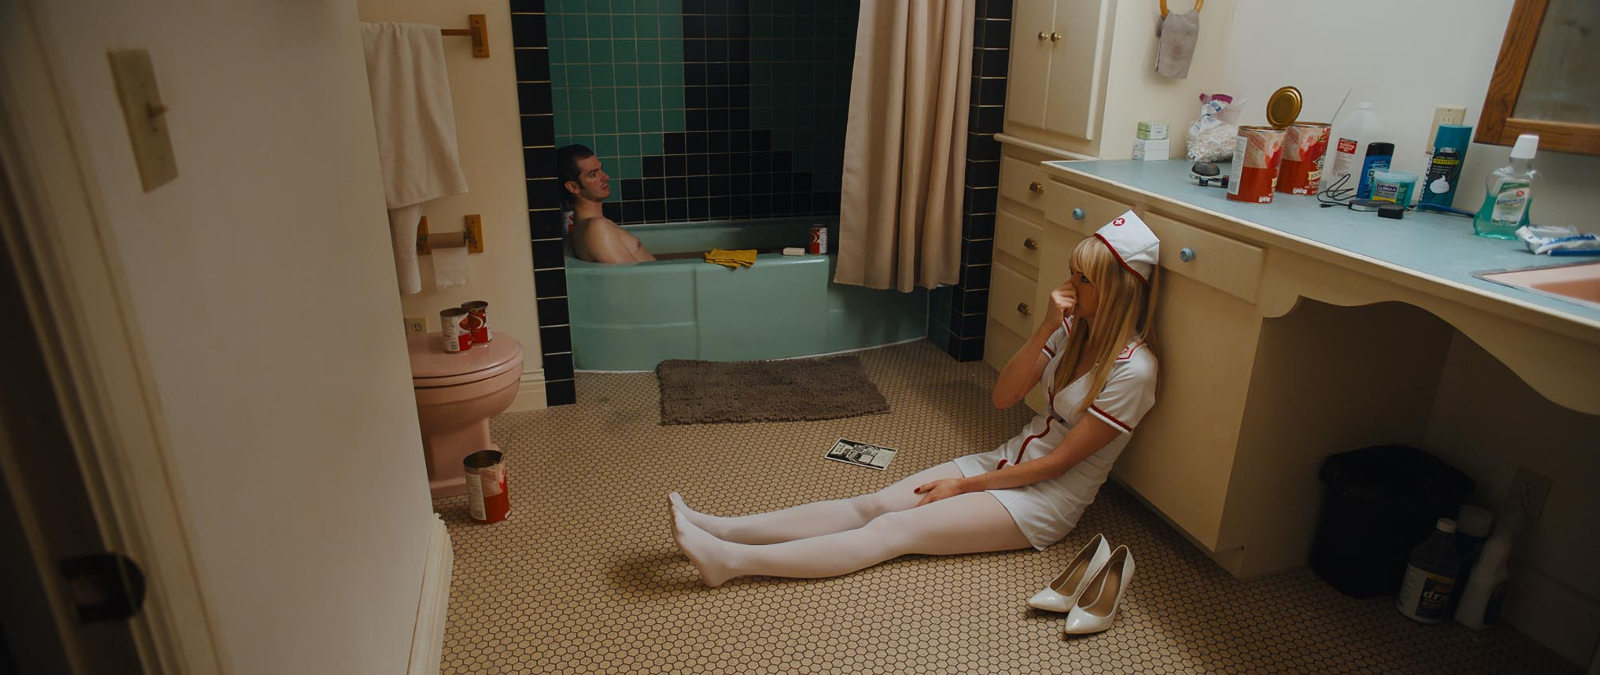 Andrew Garfield y Riki Lindhome